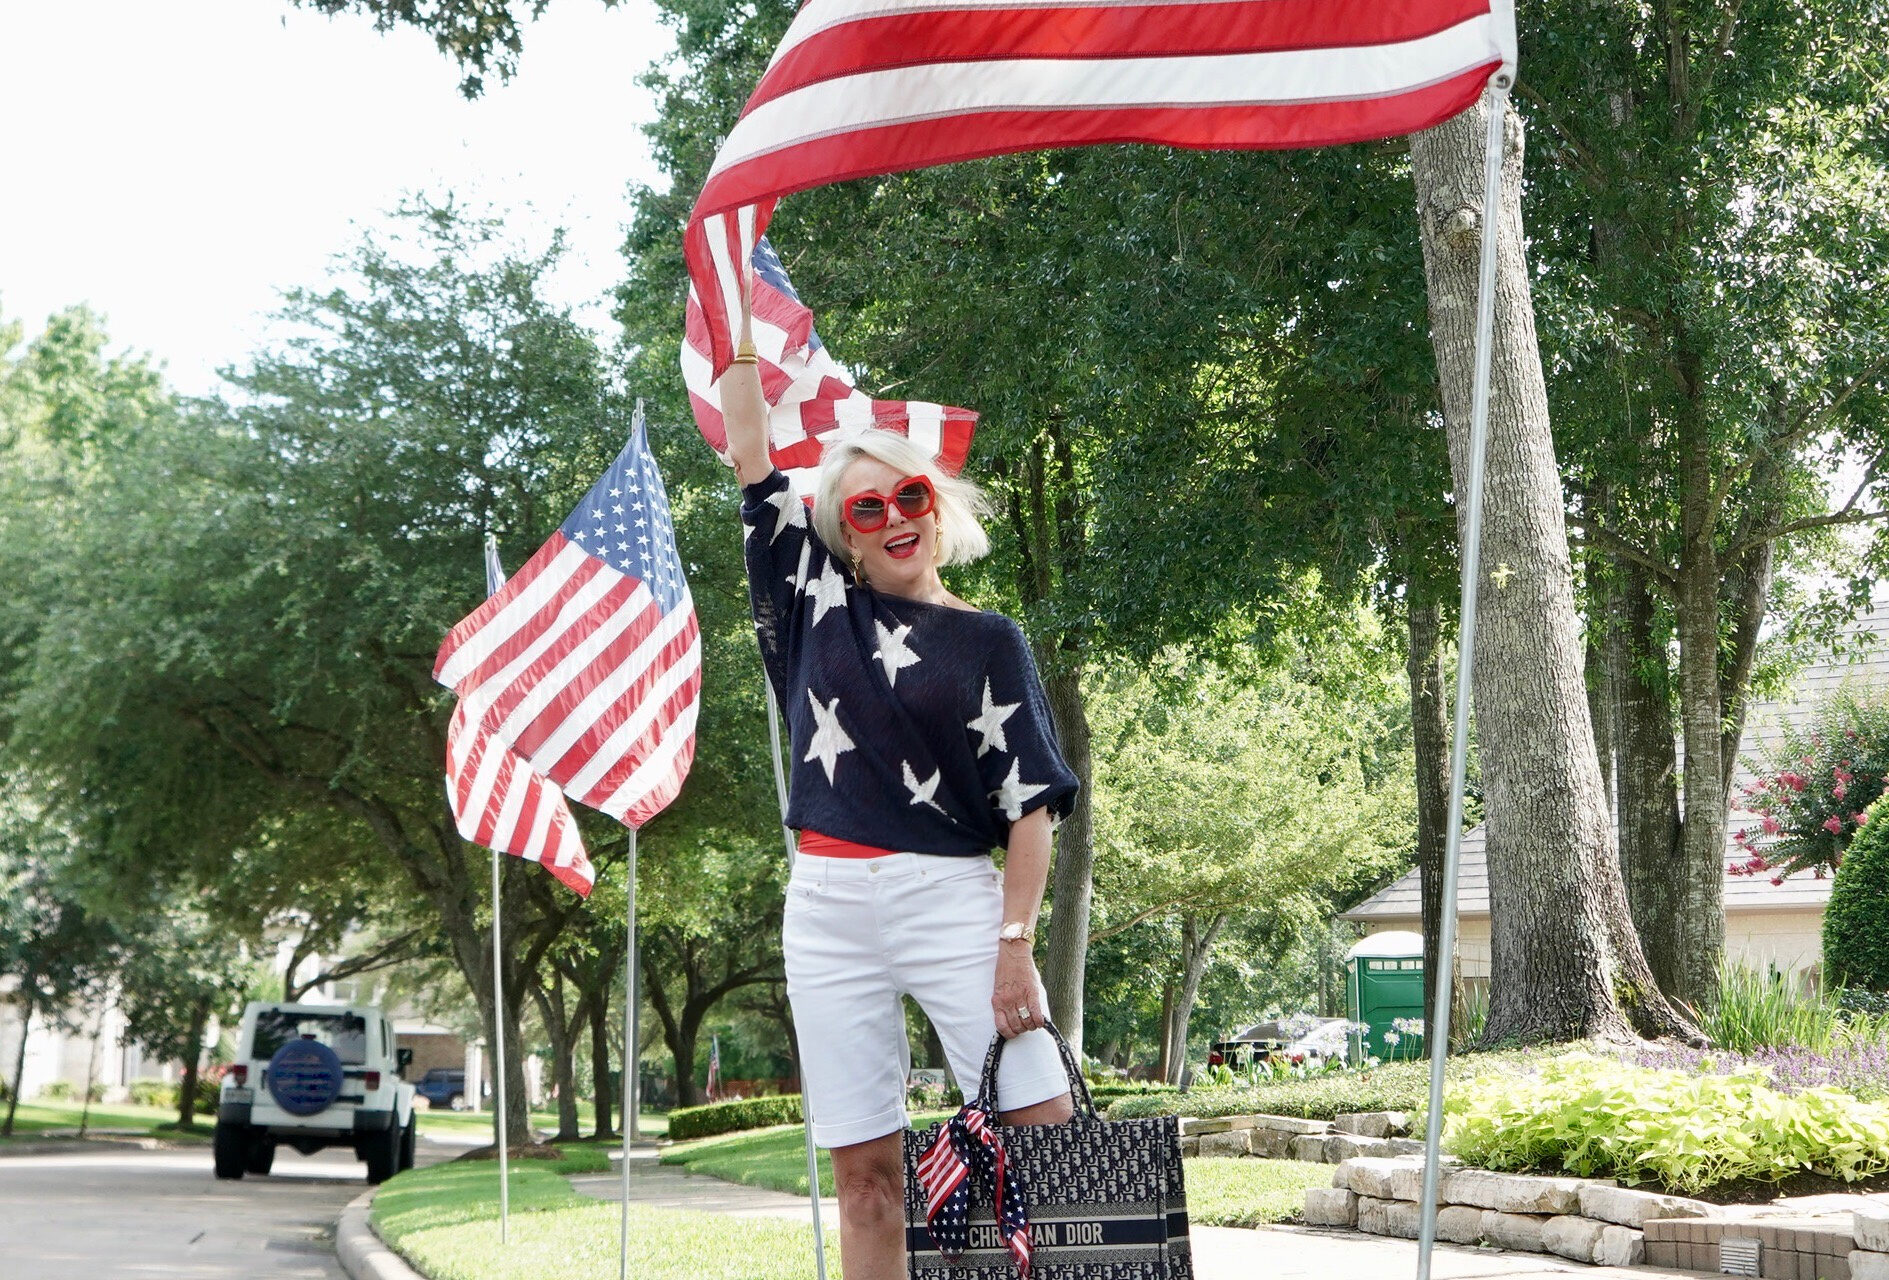 Sheree Frede of the SheShe Show standing by American Flags wearing white shorts and navy sweater with white stars